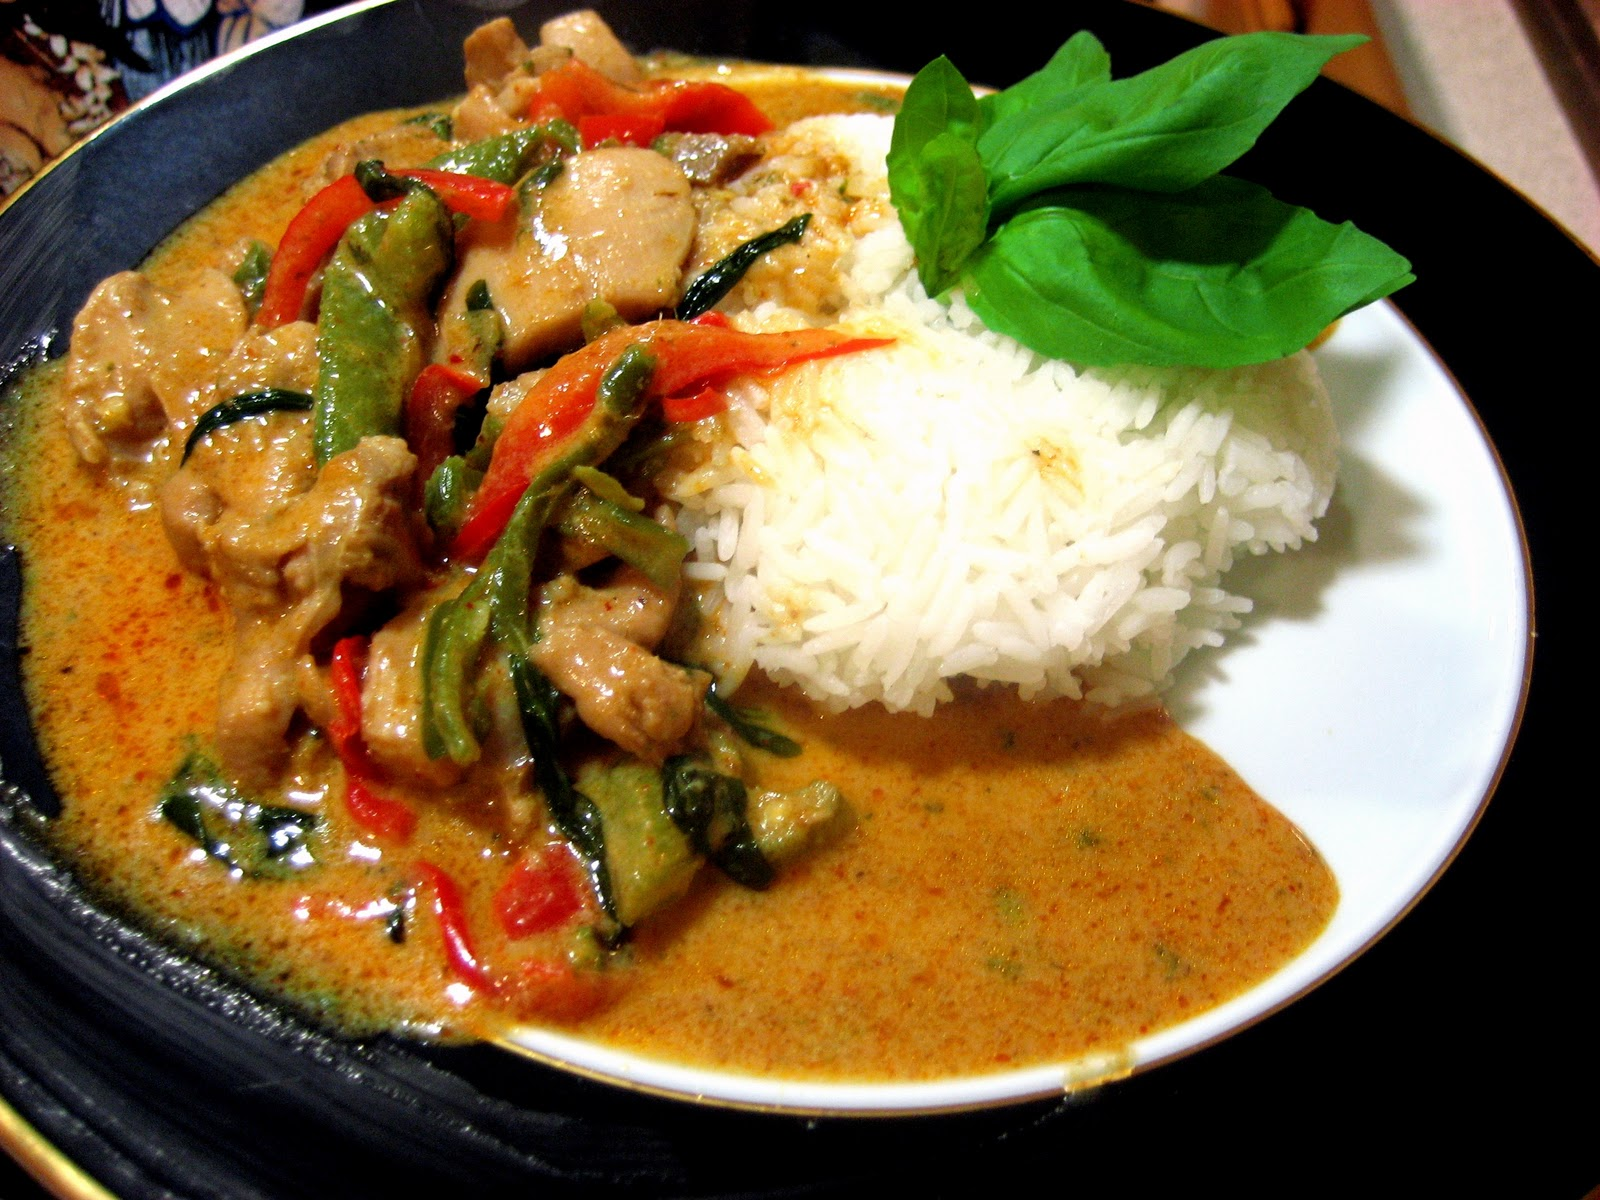 Recipes Course Main Dish Poultry - Chicken Panang Chicken Curry